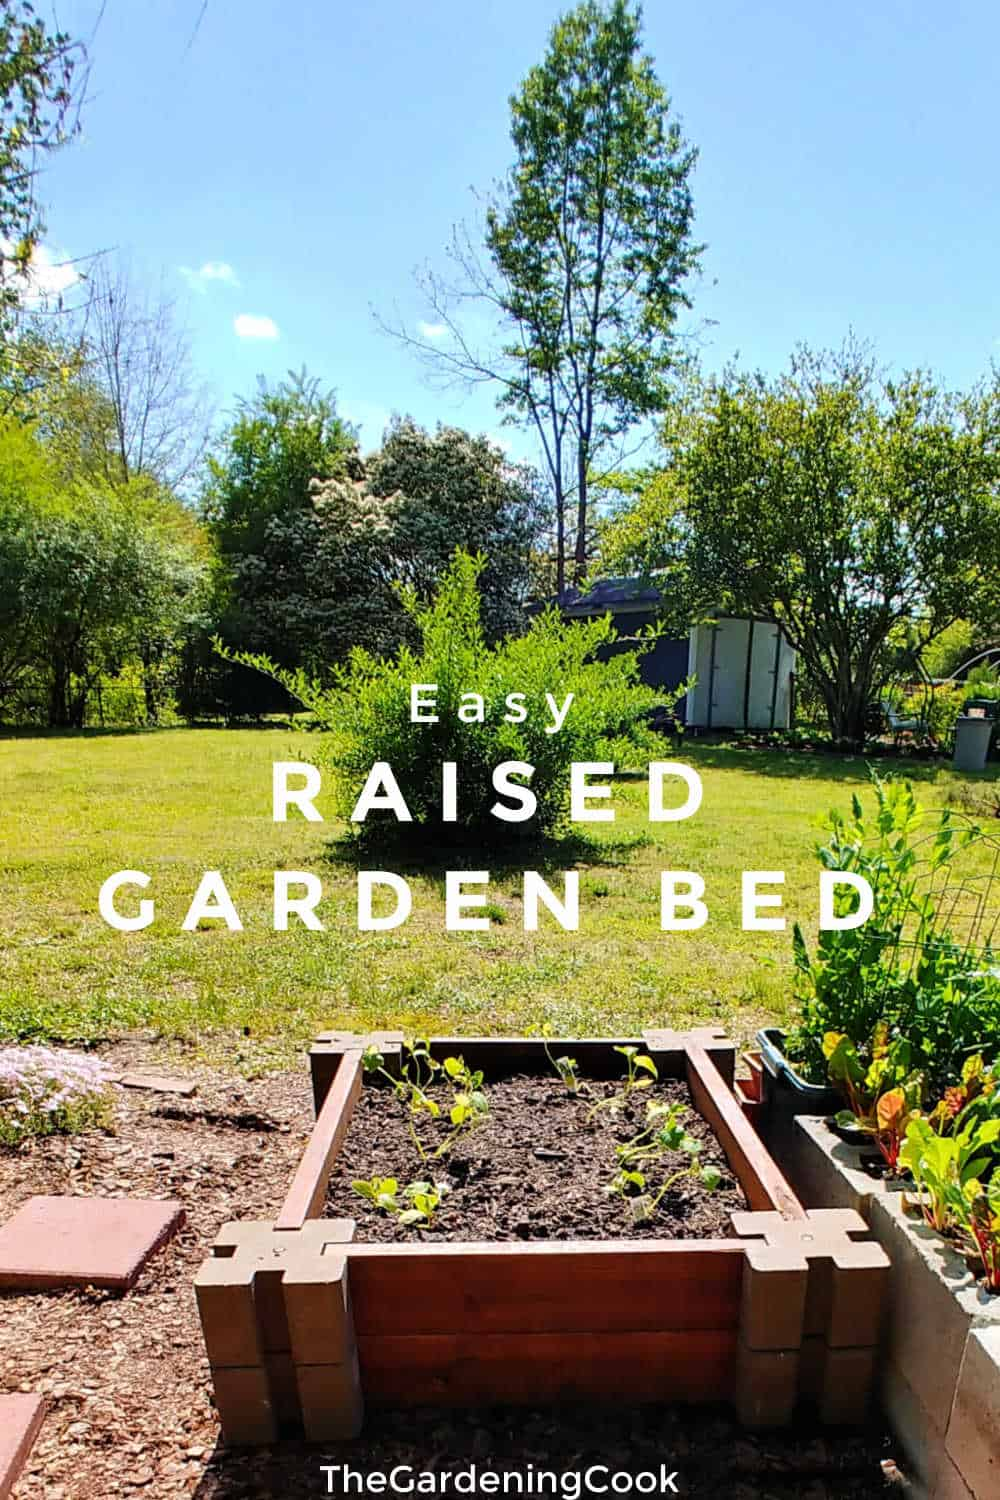 Raised garden bed near a lawn with text overlay reading easy raised garden bed.